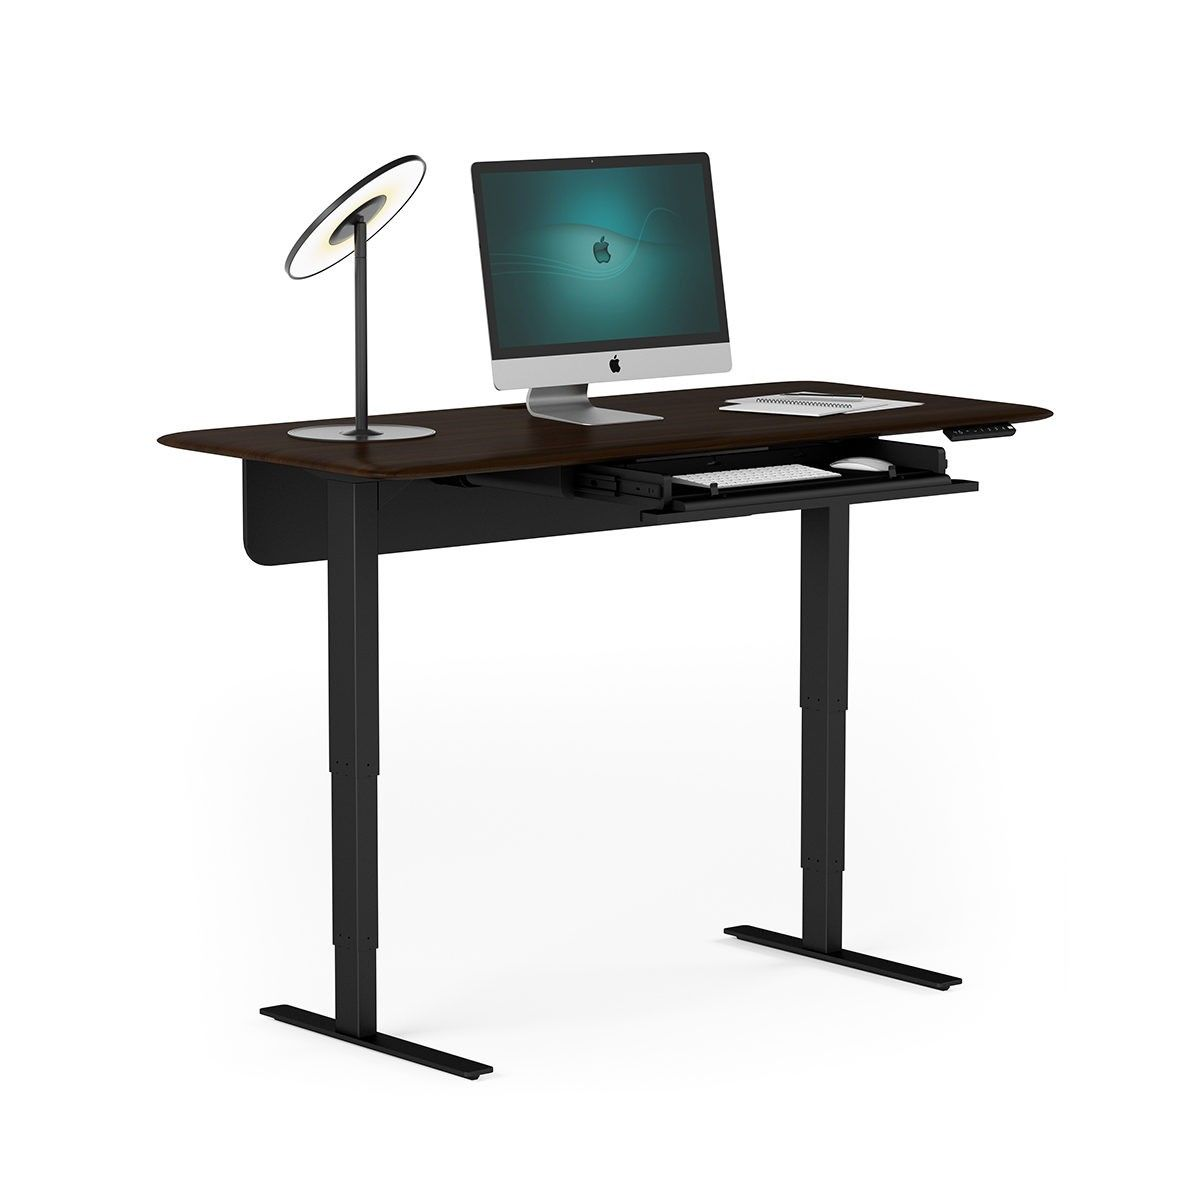 Bdi Home Office Sola 6853 Lift Standing Desk Creative Furniture Adjustable Height Standing Desk Adjustable Standing Desk Lift Desk